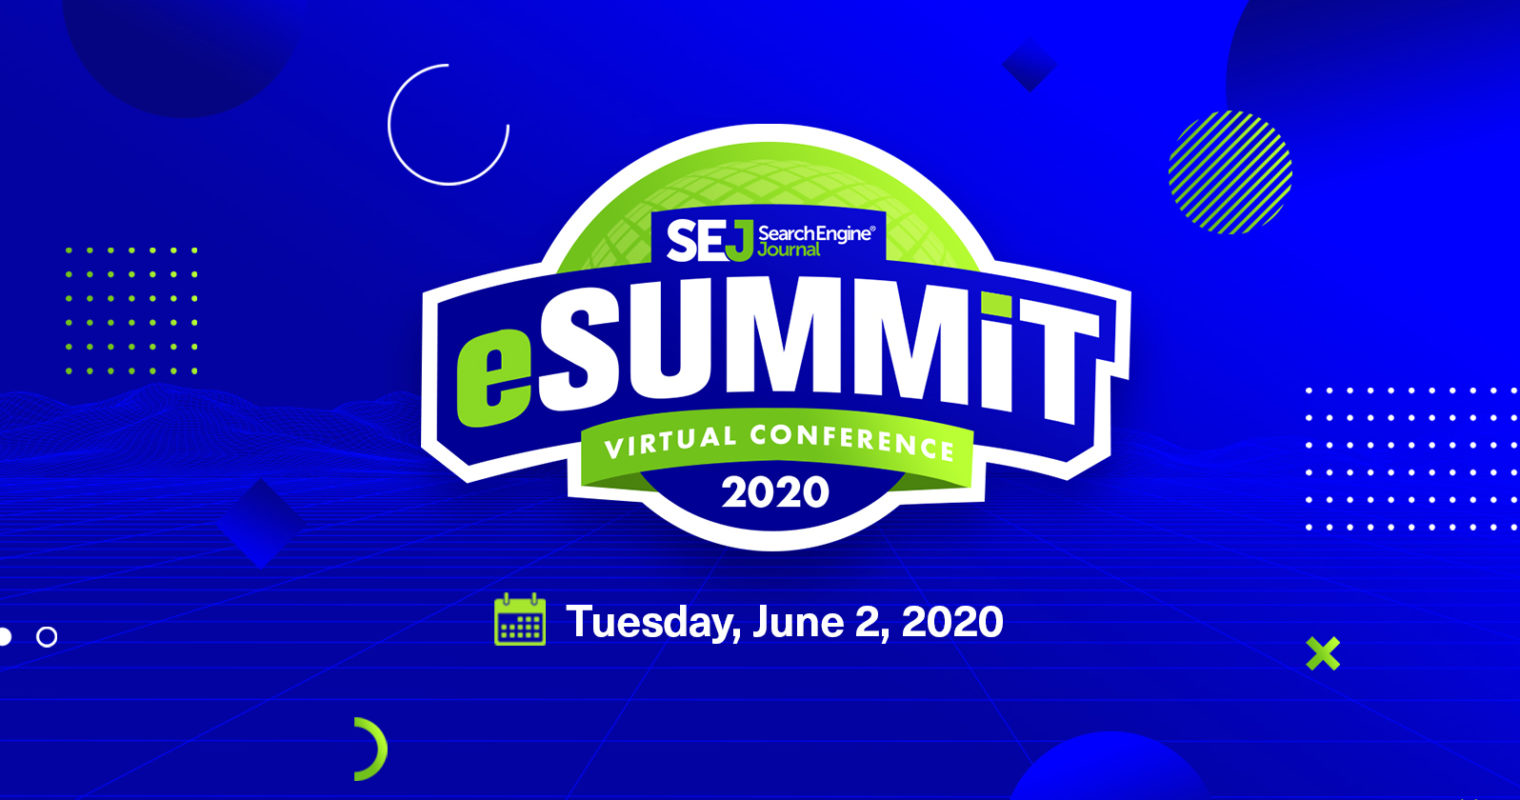 SEJ eSummit: Who Is Speaking & All the Latest Info You Need to Know